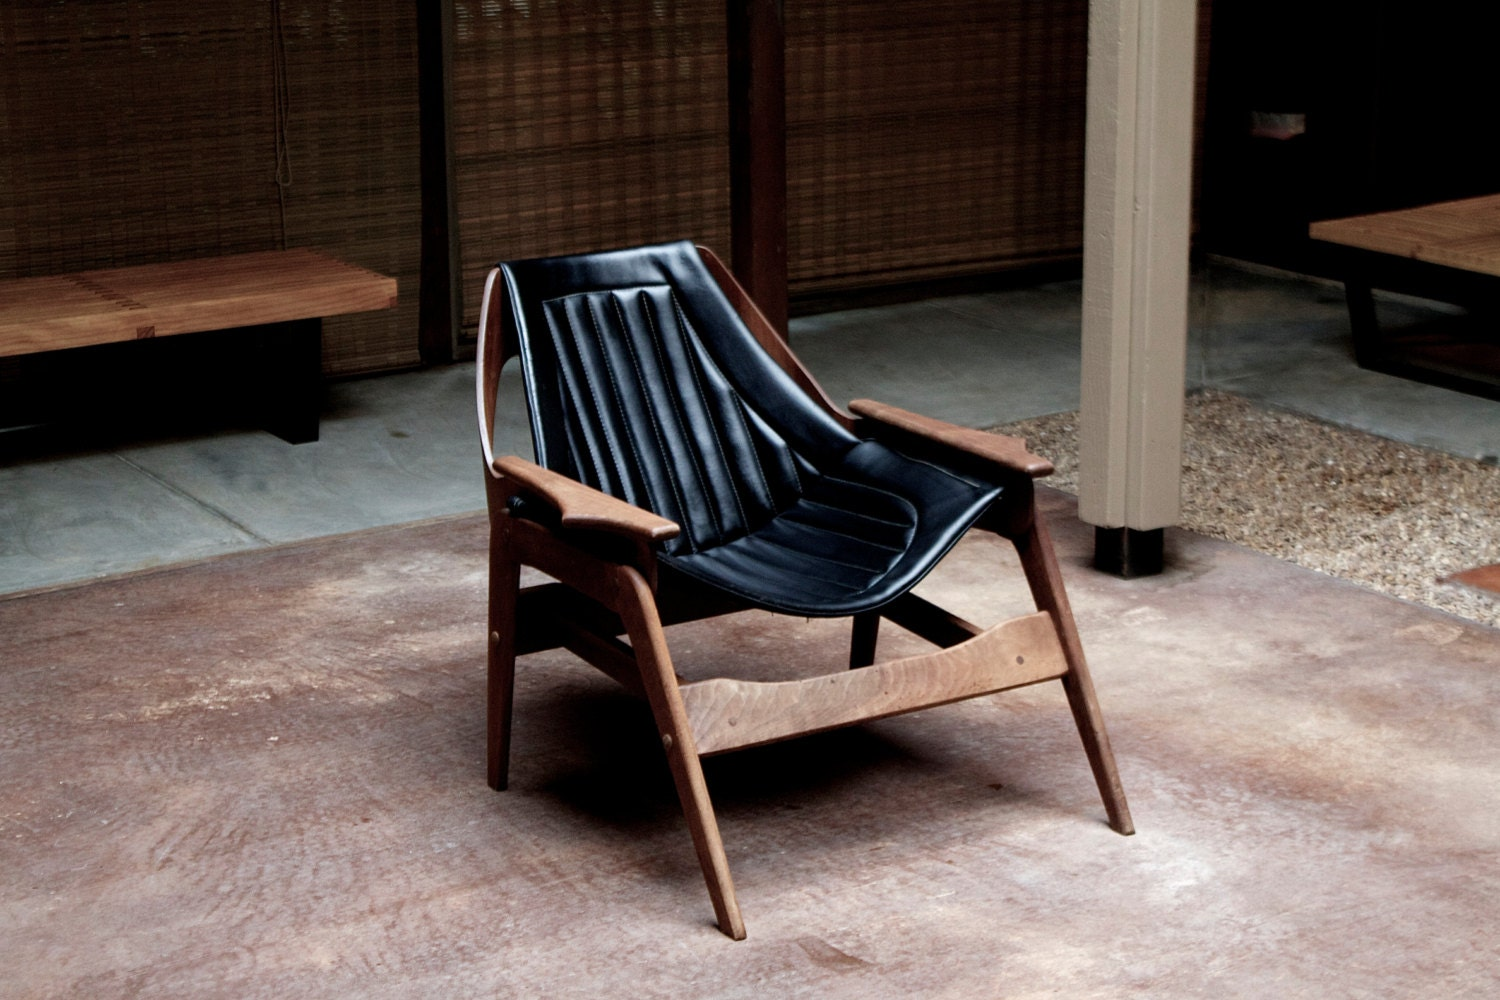 Reservedrare Vintage Mcm Jerry Johnson Sling Chair